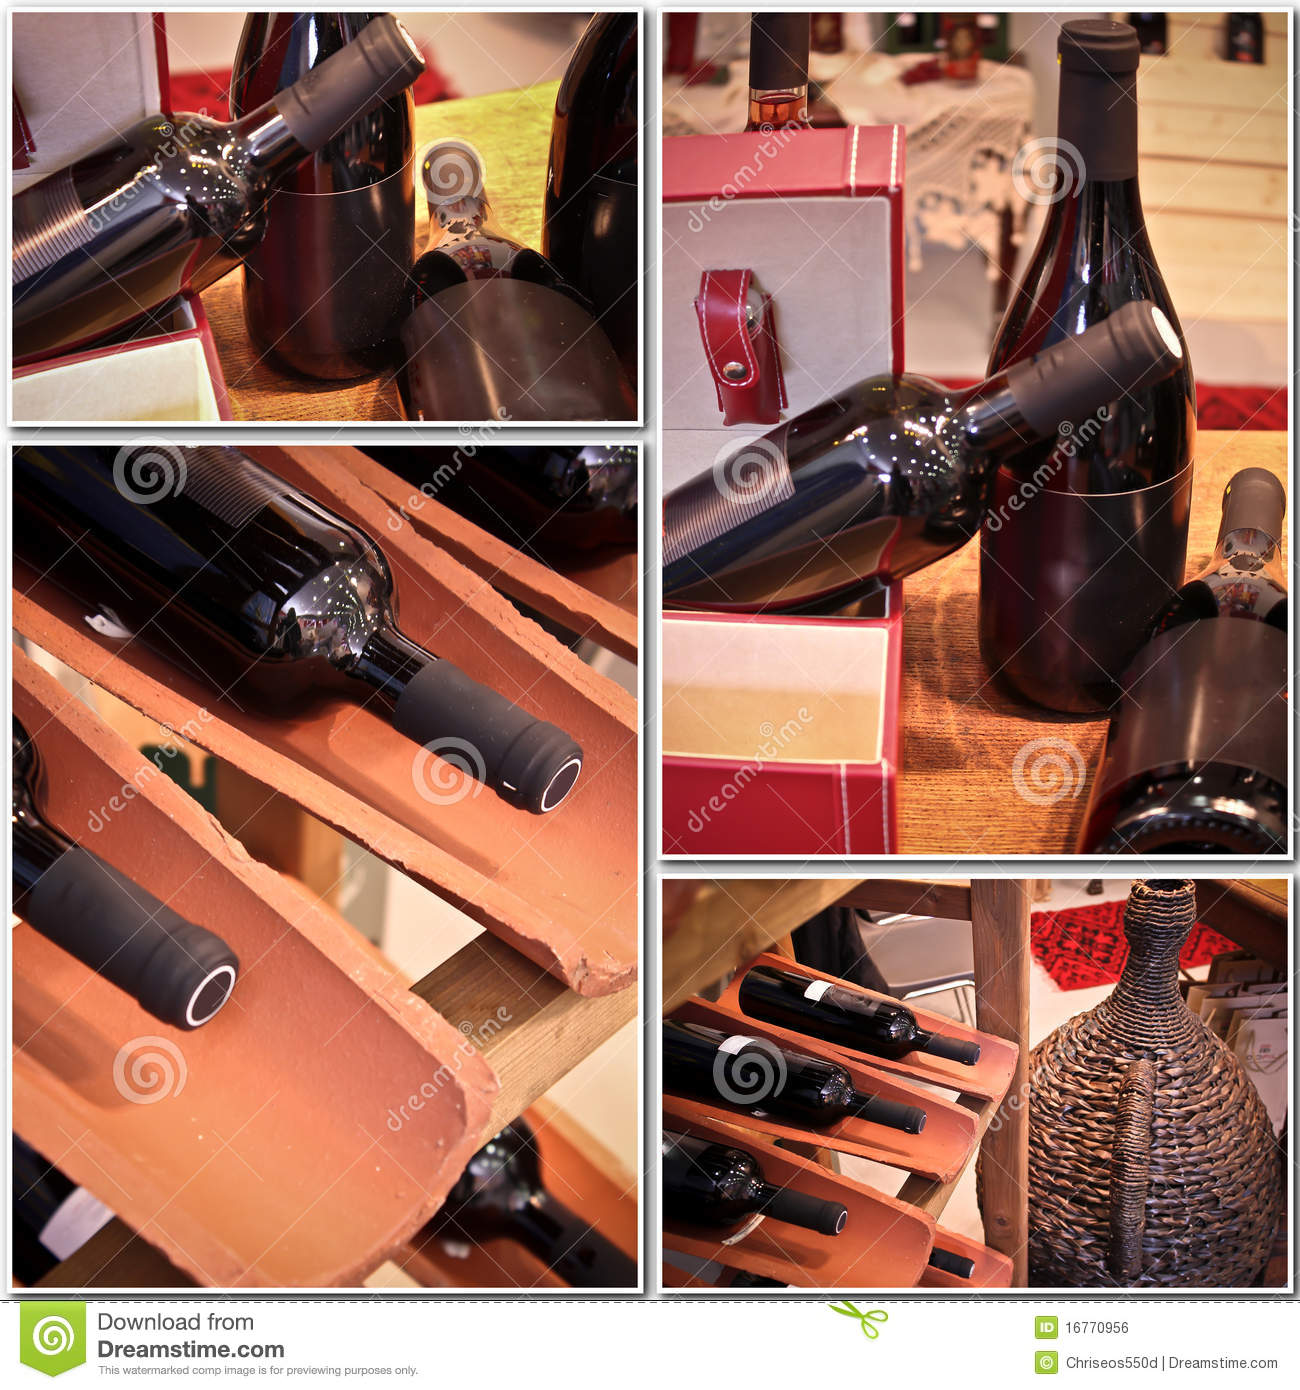 Wine bottles in a collage